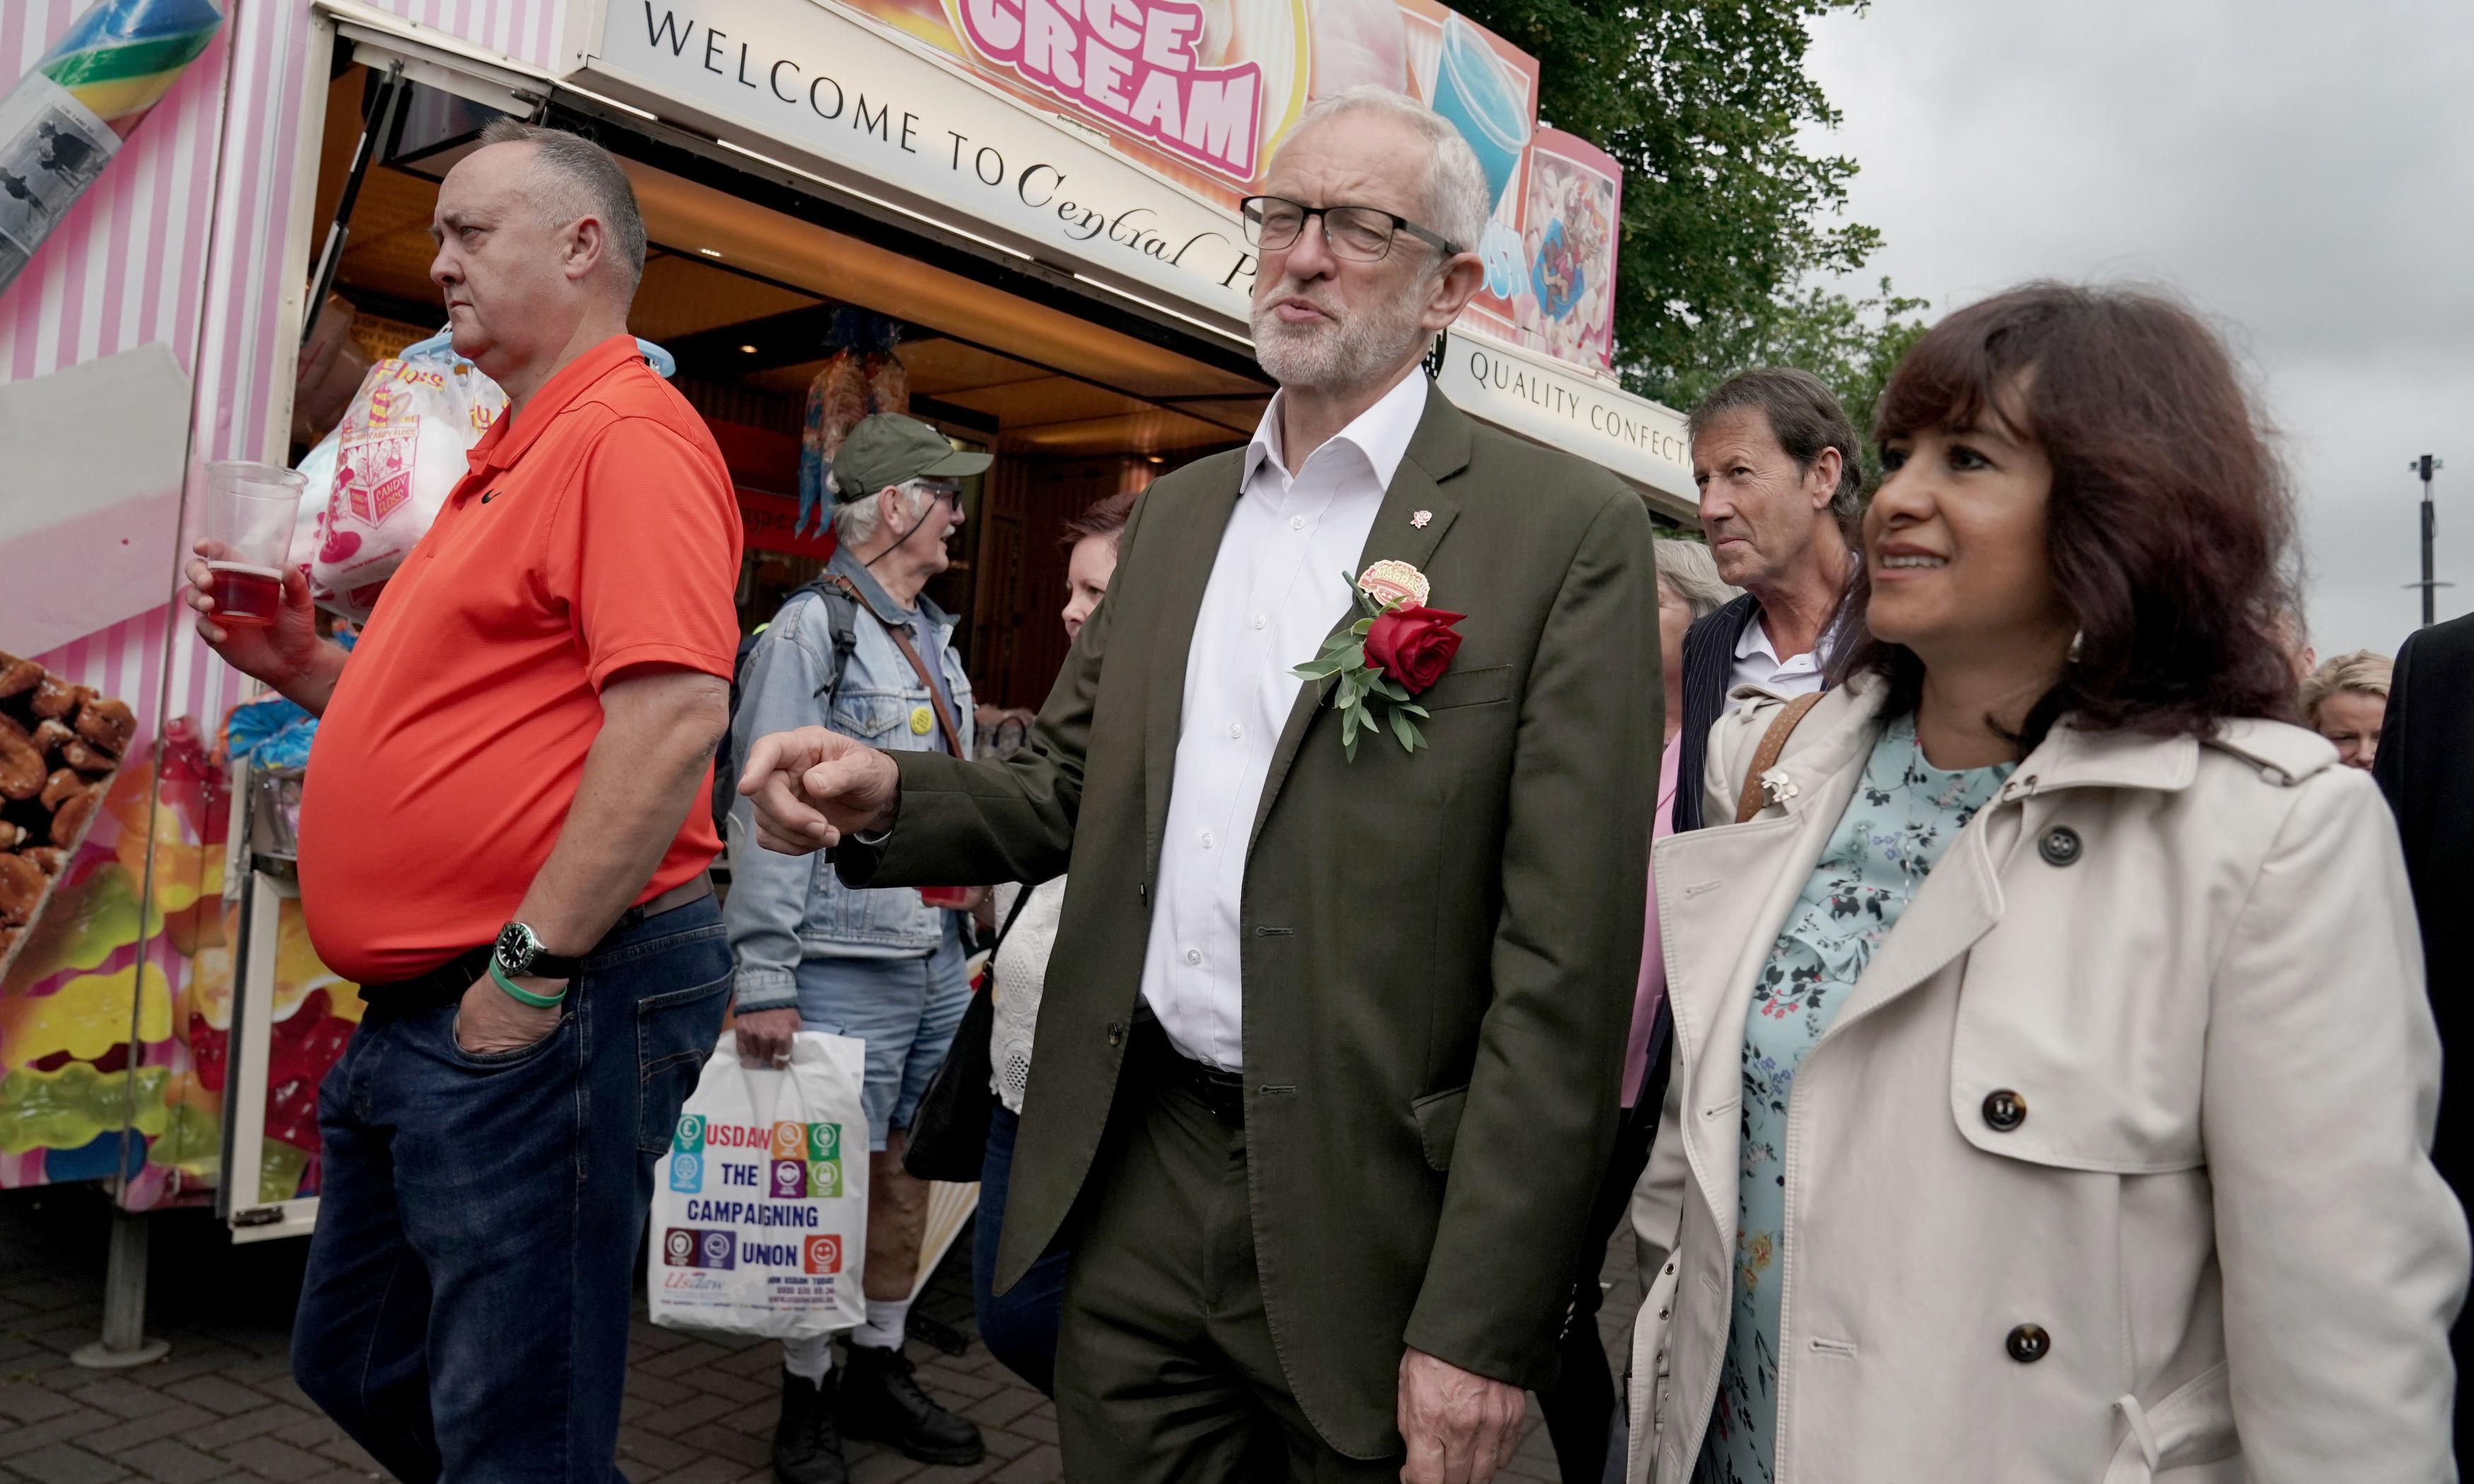 Whistleblowers to sue Labour as antisemitism row deepens